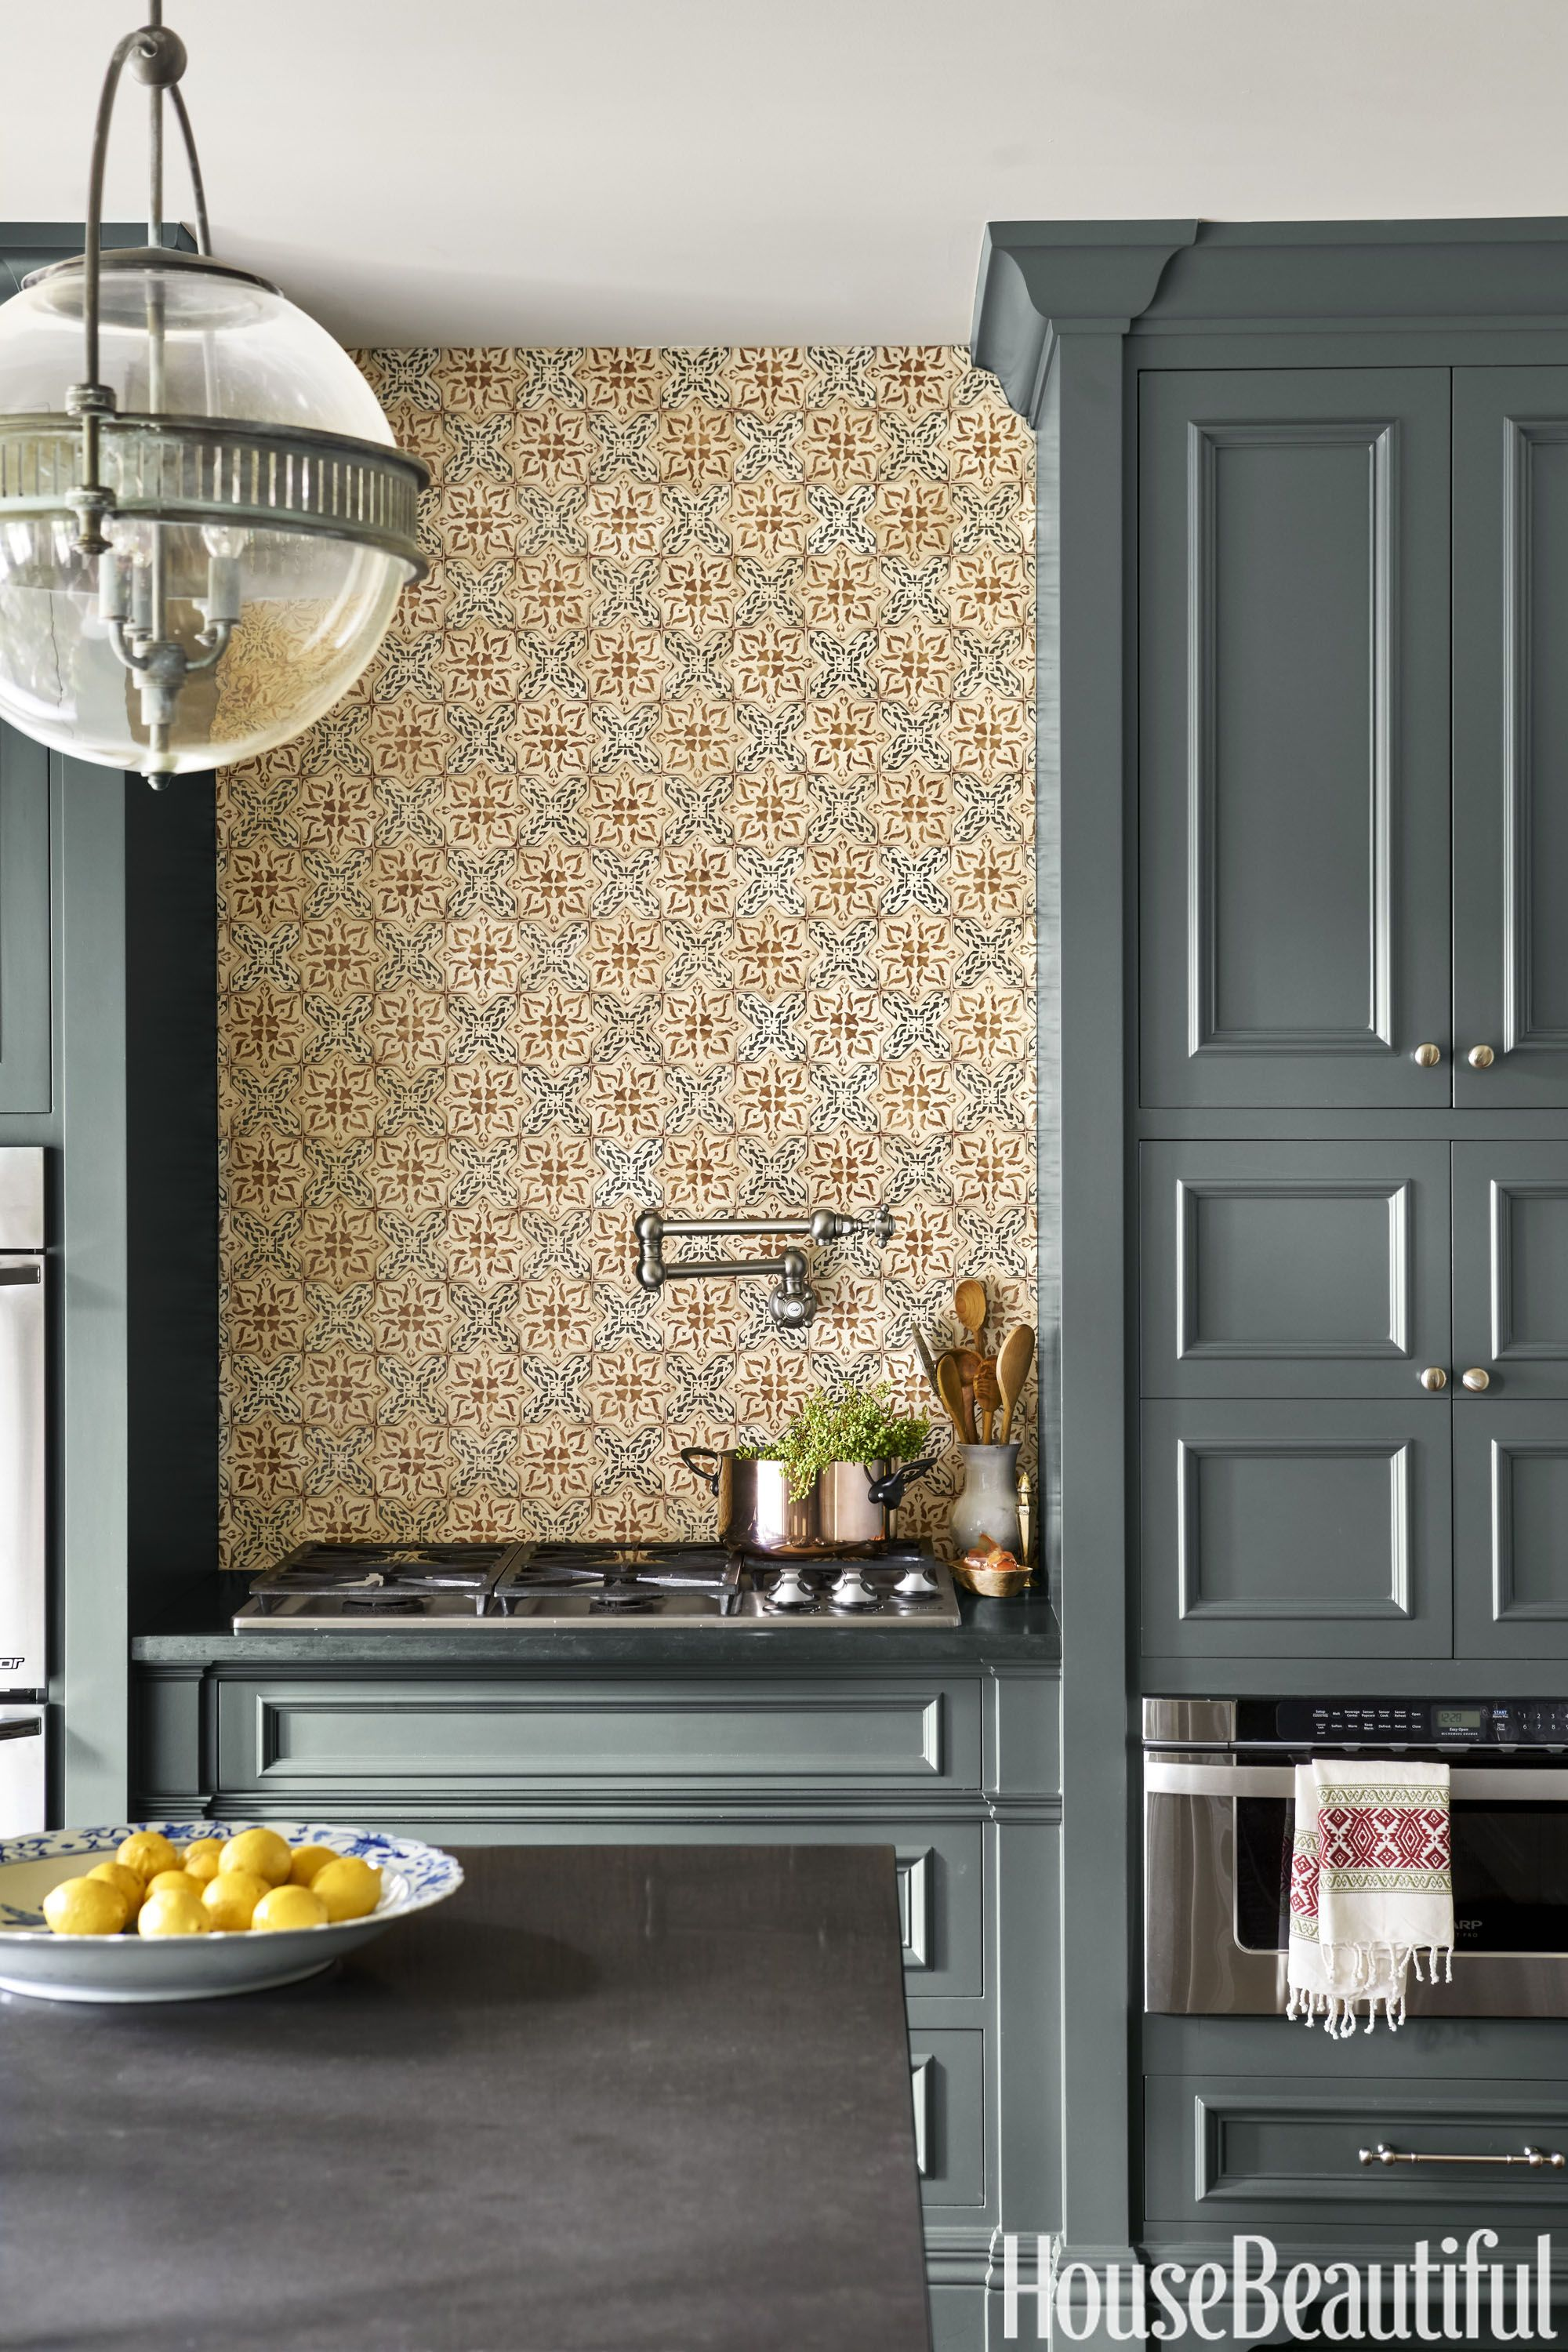 Merveilleux Caitlin Moran Kitchen Backsplash